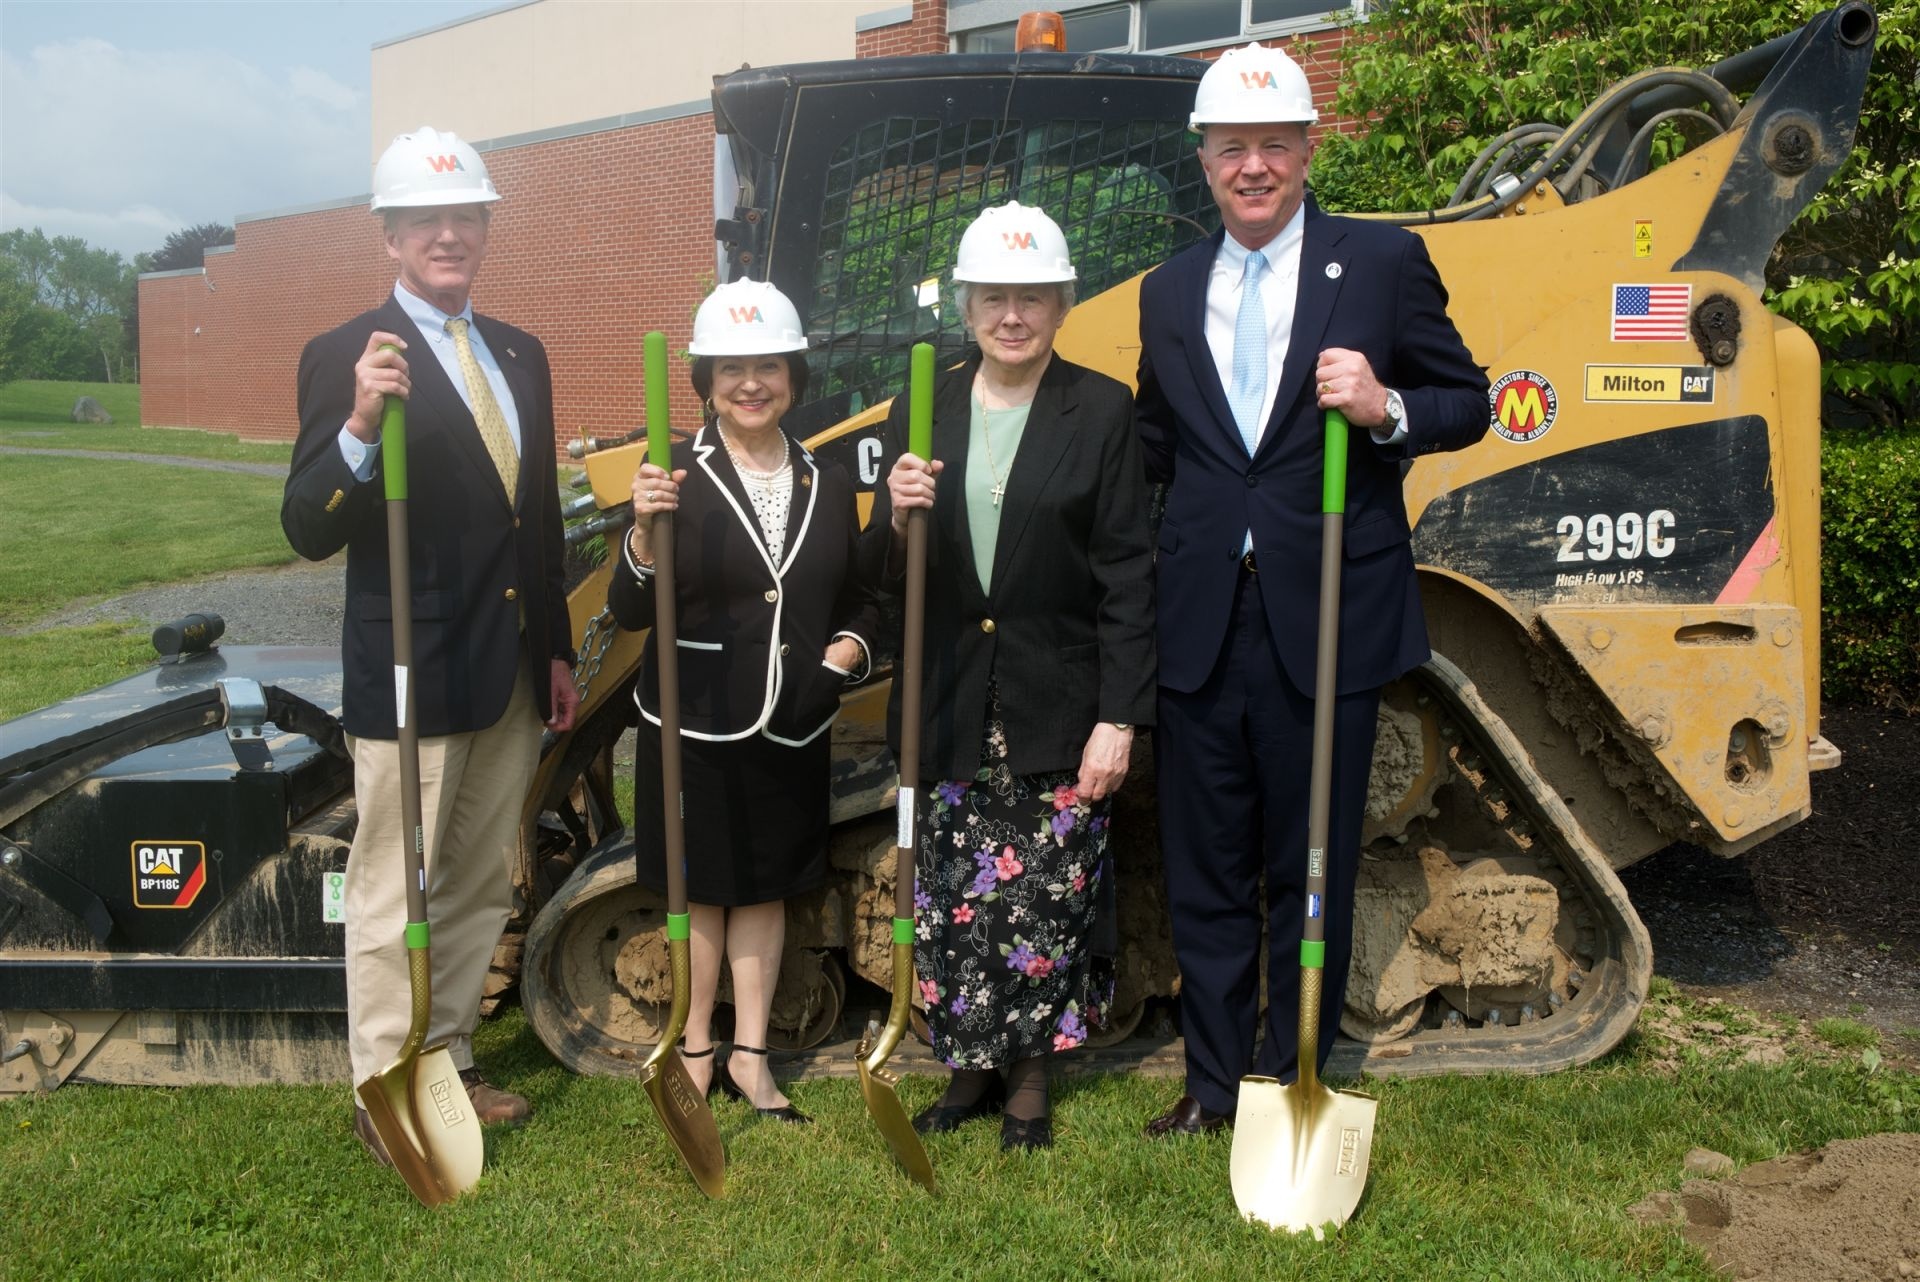 Jack Maloy, Board Vice Chair, Mary Anne Vigliante, Head of School, Sister Karyl Fredericks, SNJM, and David Hayes, Board Chair